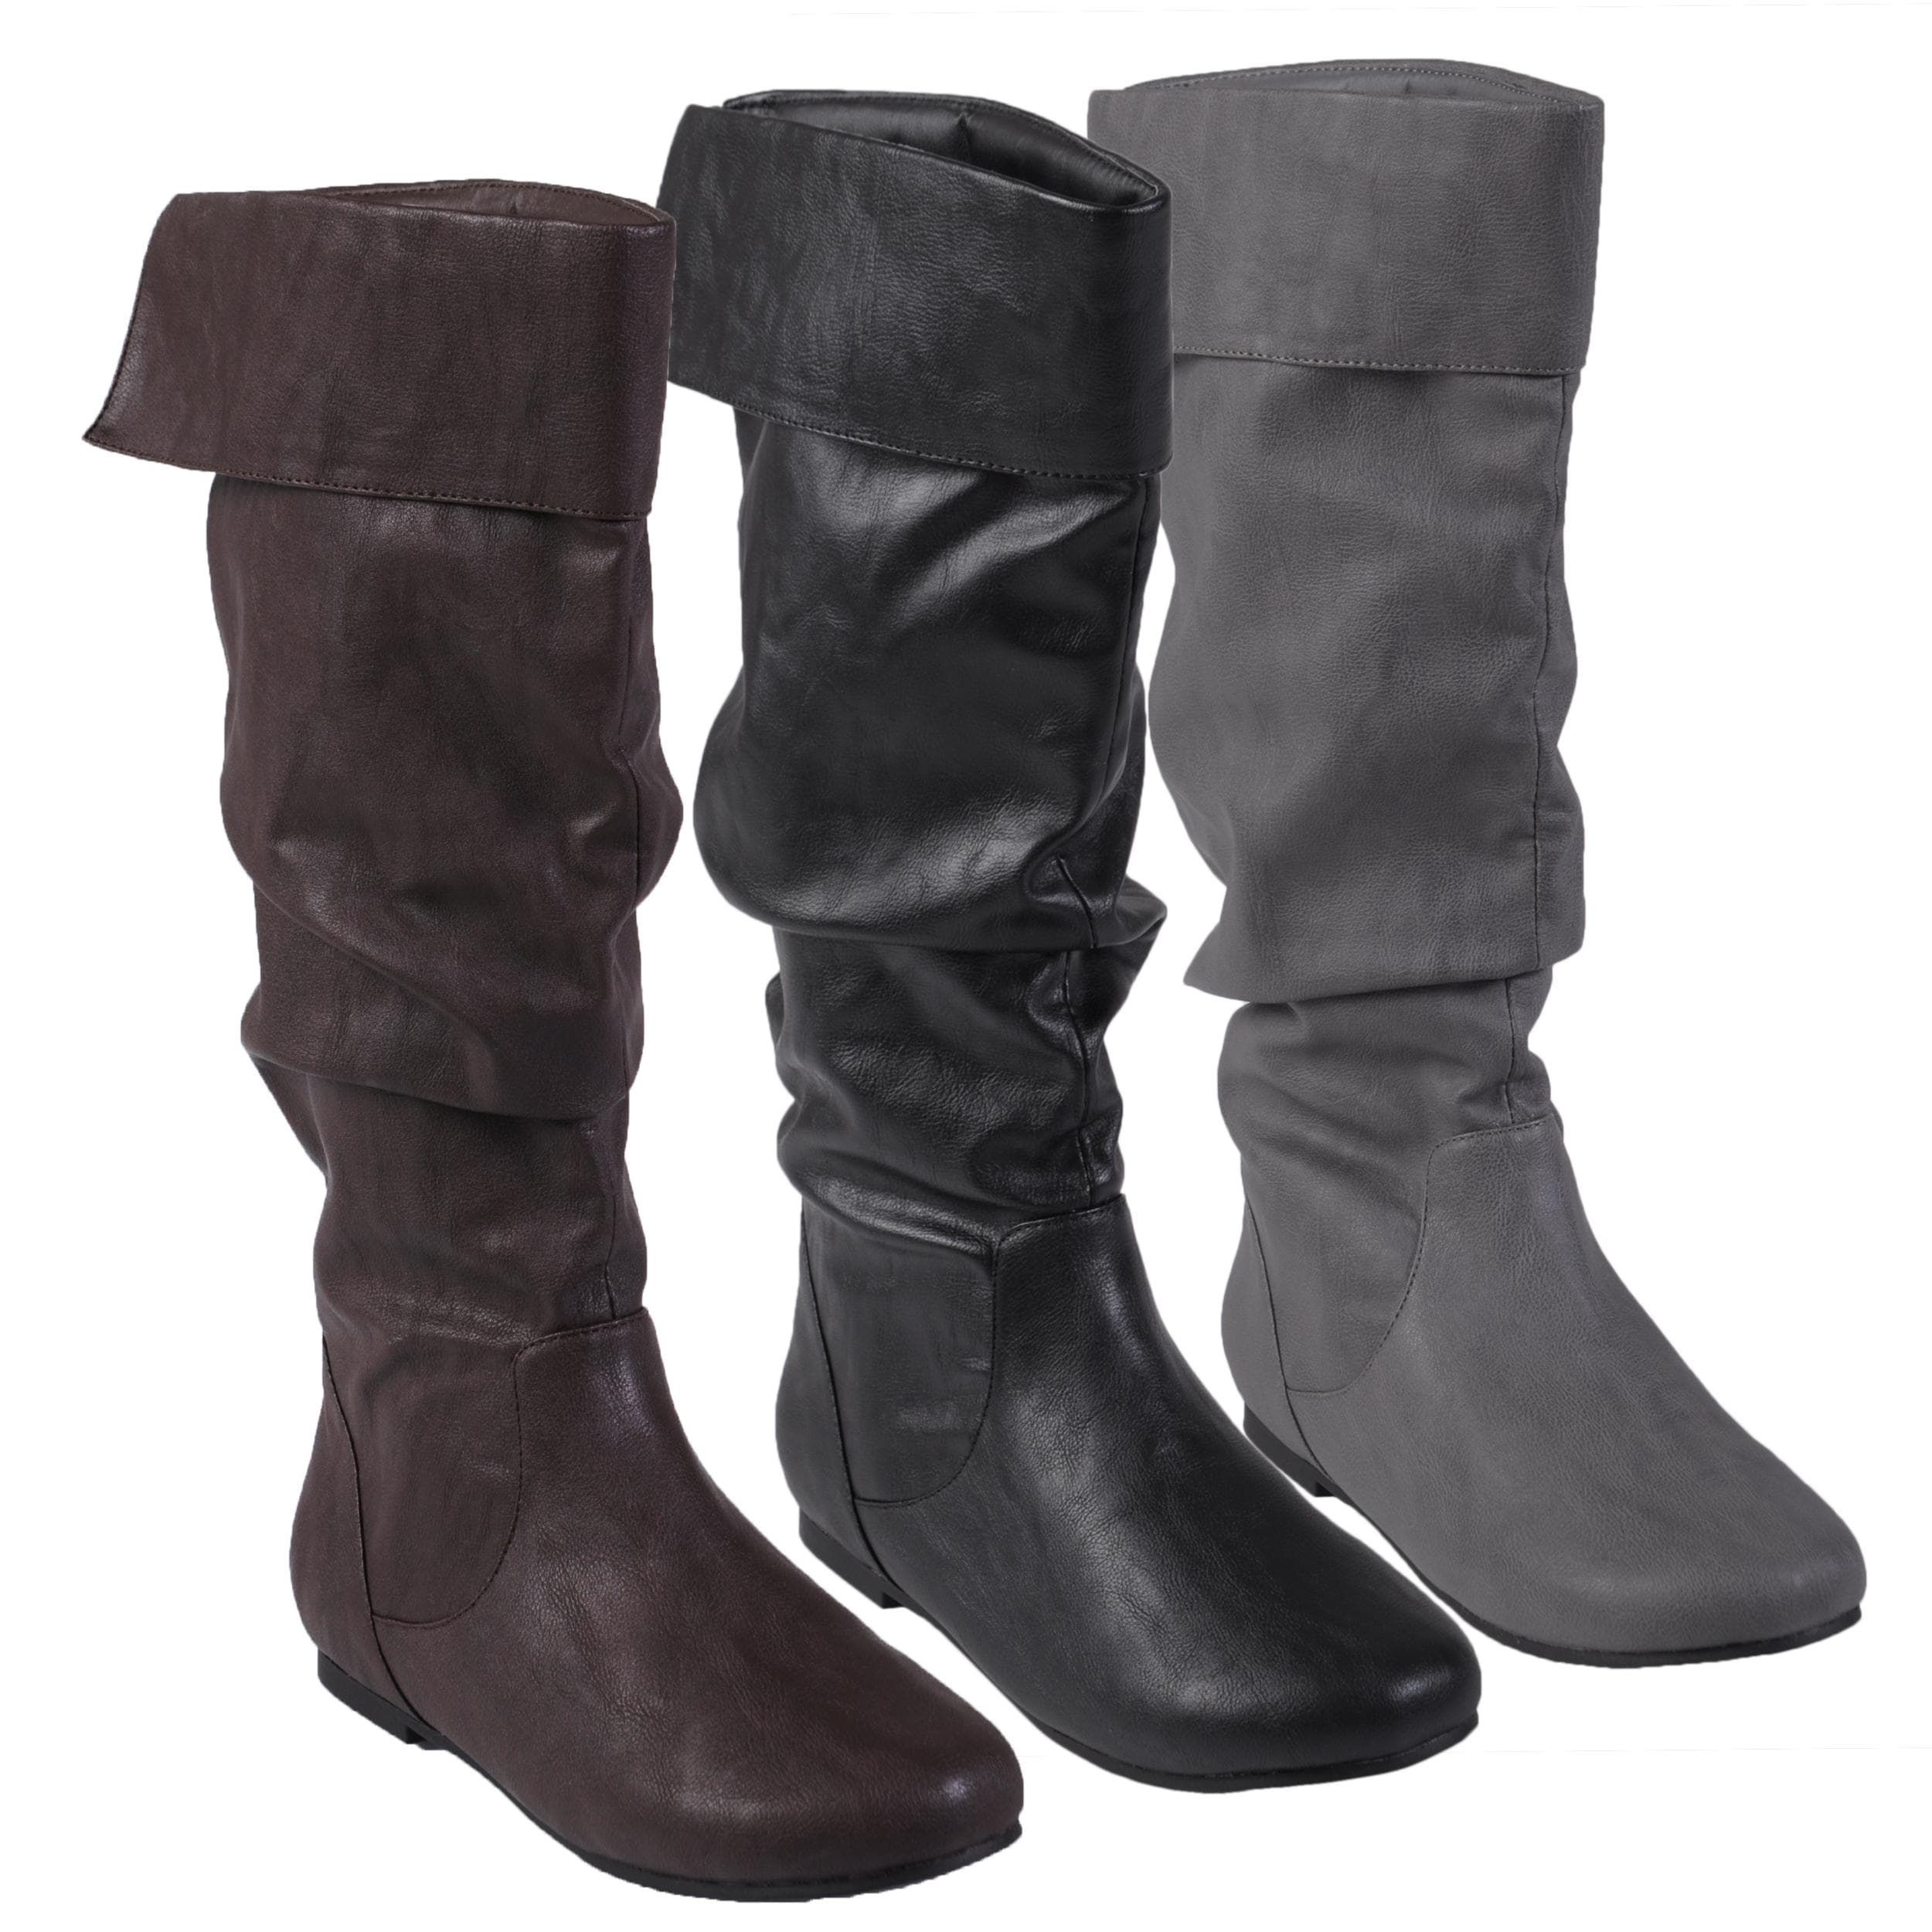 347190859f326 Shop Journee Collection Women's 'Alli-24' Faux Leather Slouchy Boot - Free  Shipping On Orders Over $45 - Overstock - 6153612